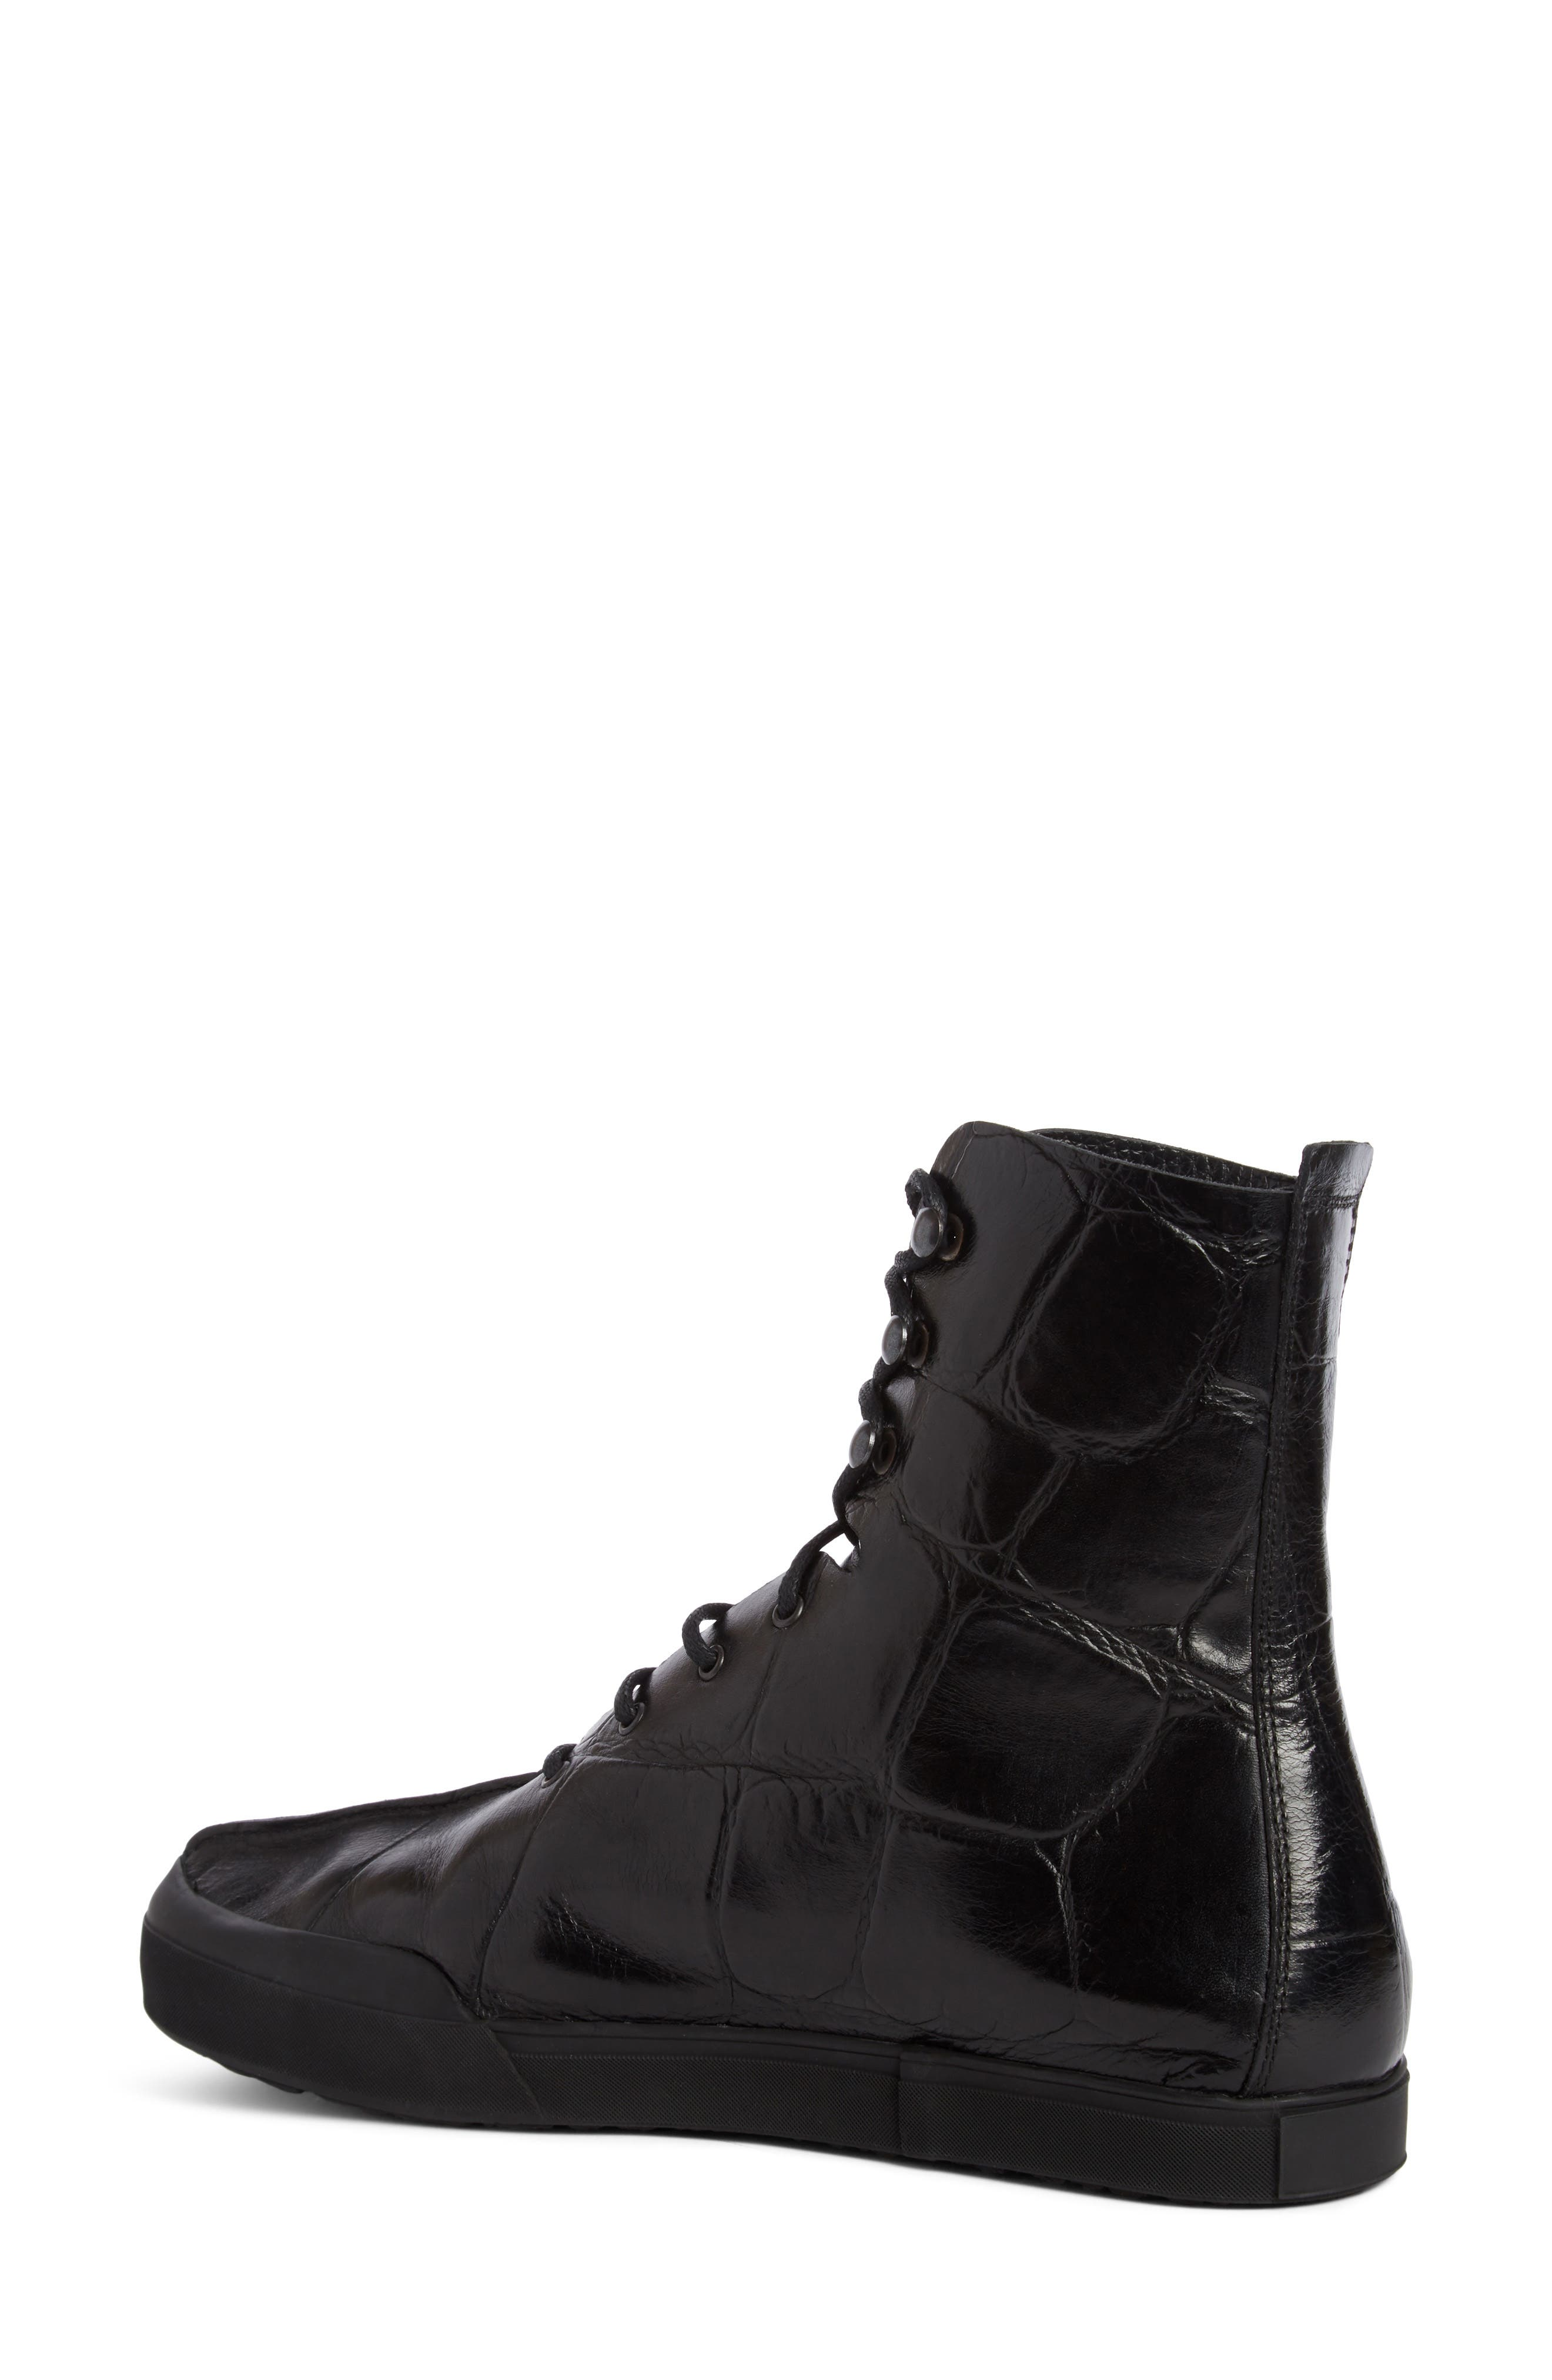 Croc Embossed Lace-Up Boot,                             Alternate thumbnail 2, color,                             Black